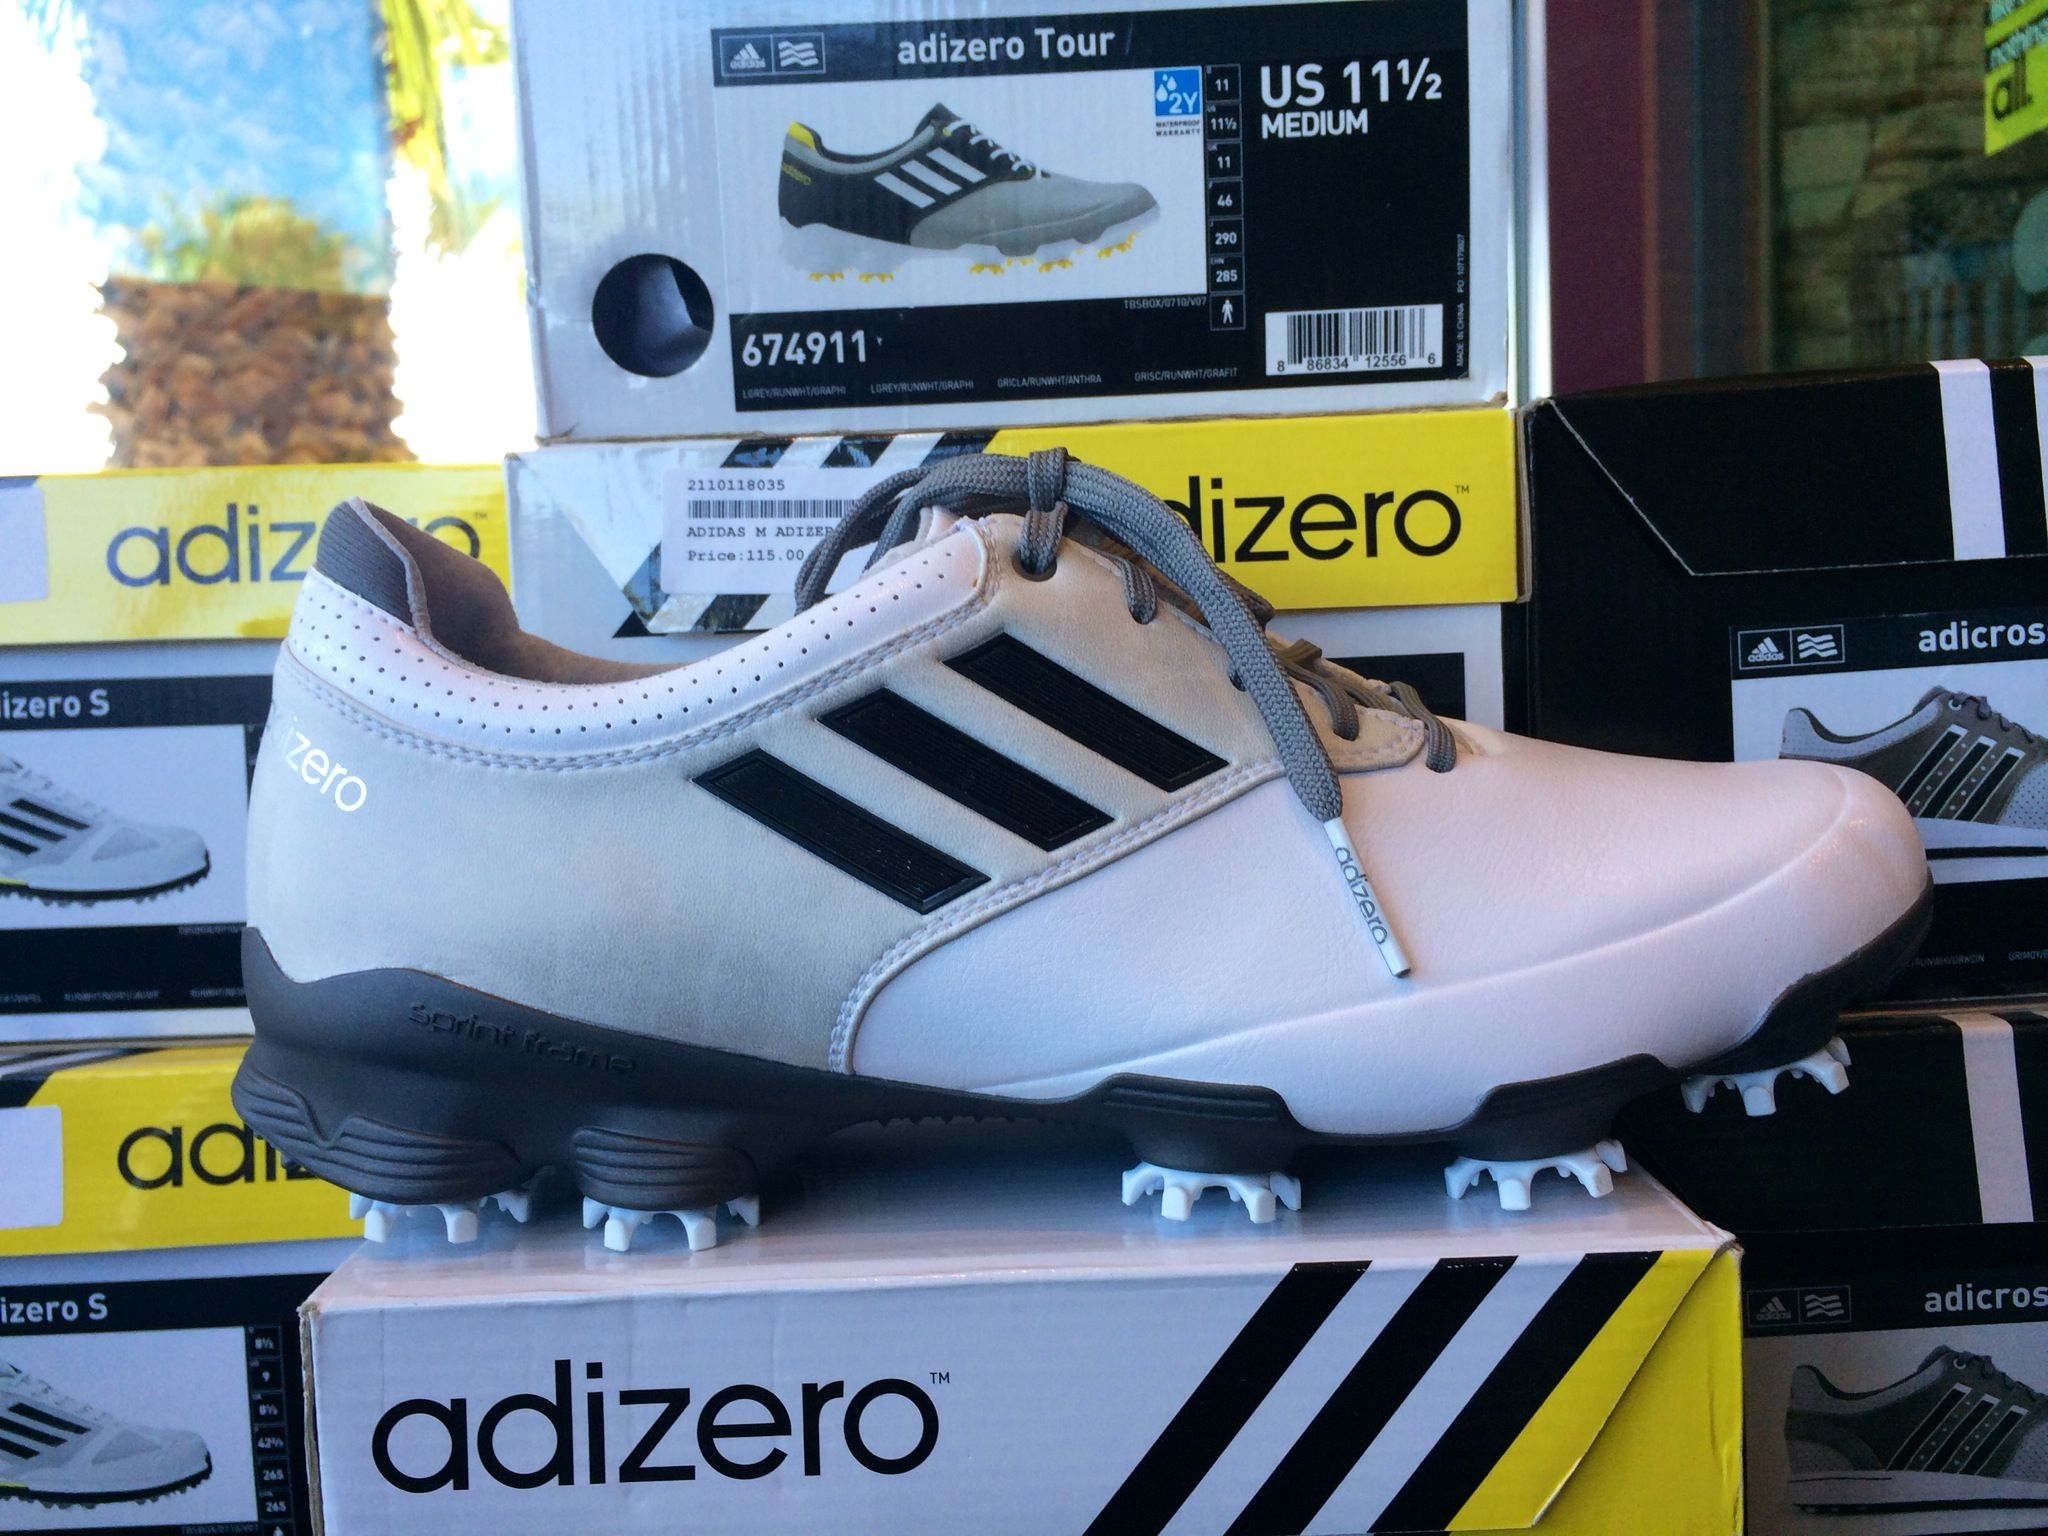 c5292b4bc6fa New Adizero Men's Golf Shoes. Available for purchase in the Desert Willow Golf  Shop #adidas #adizero #golfshoes #golfgear #desertwillow